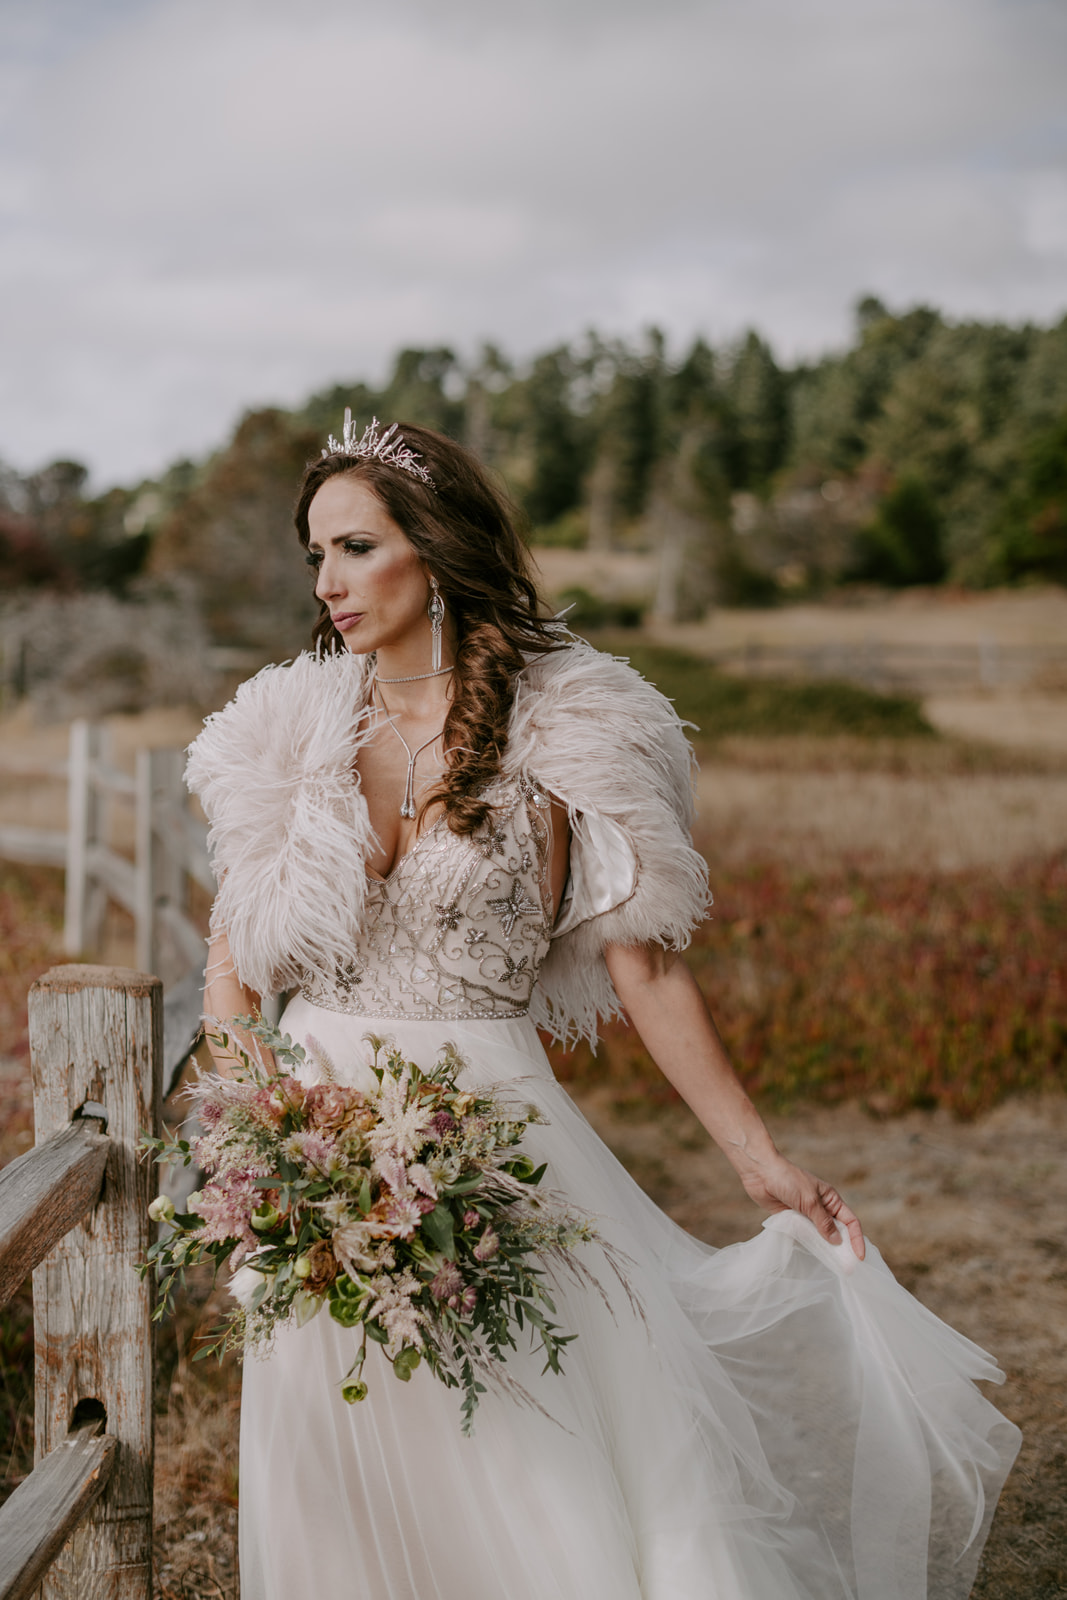 Venn Floral's stylish autumn bride on the Mendocino Coast with her quartz crown, feather shawl and textural bouquet photographed by Kristen Marie Parker.